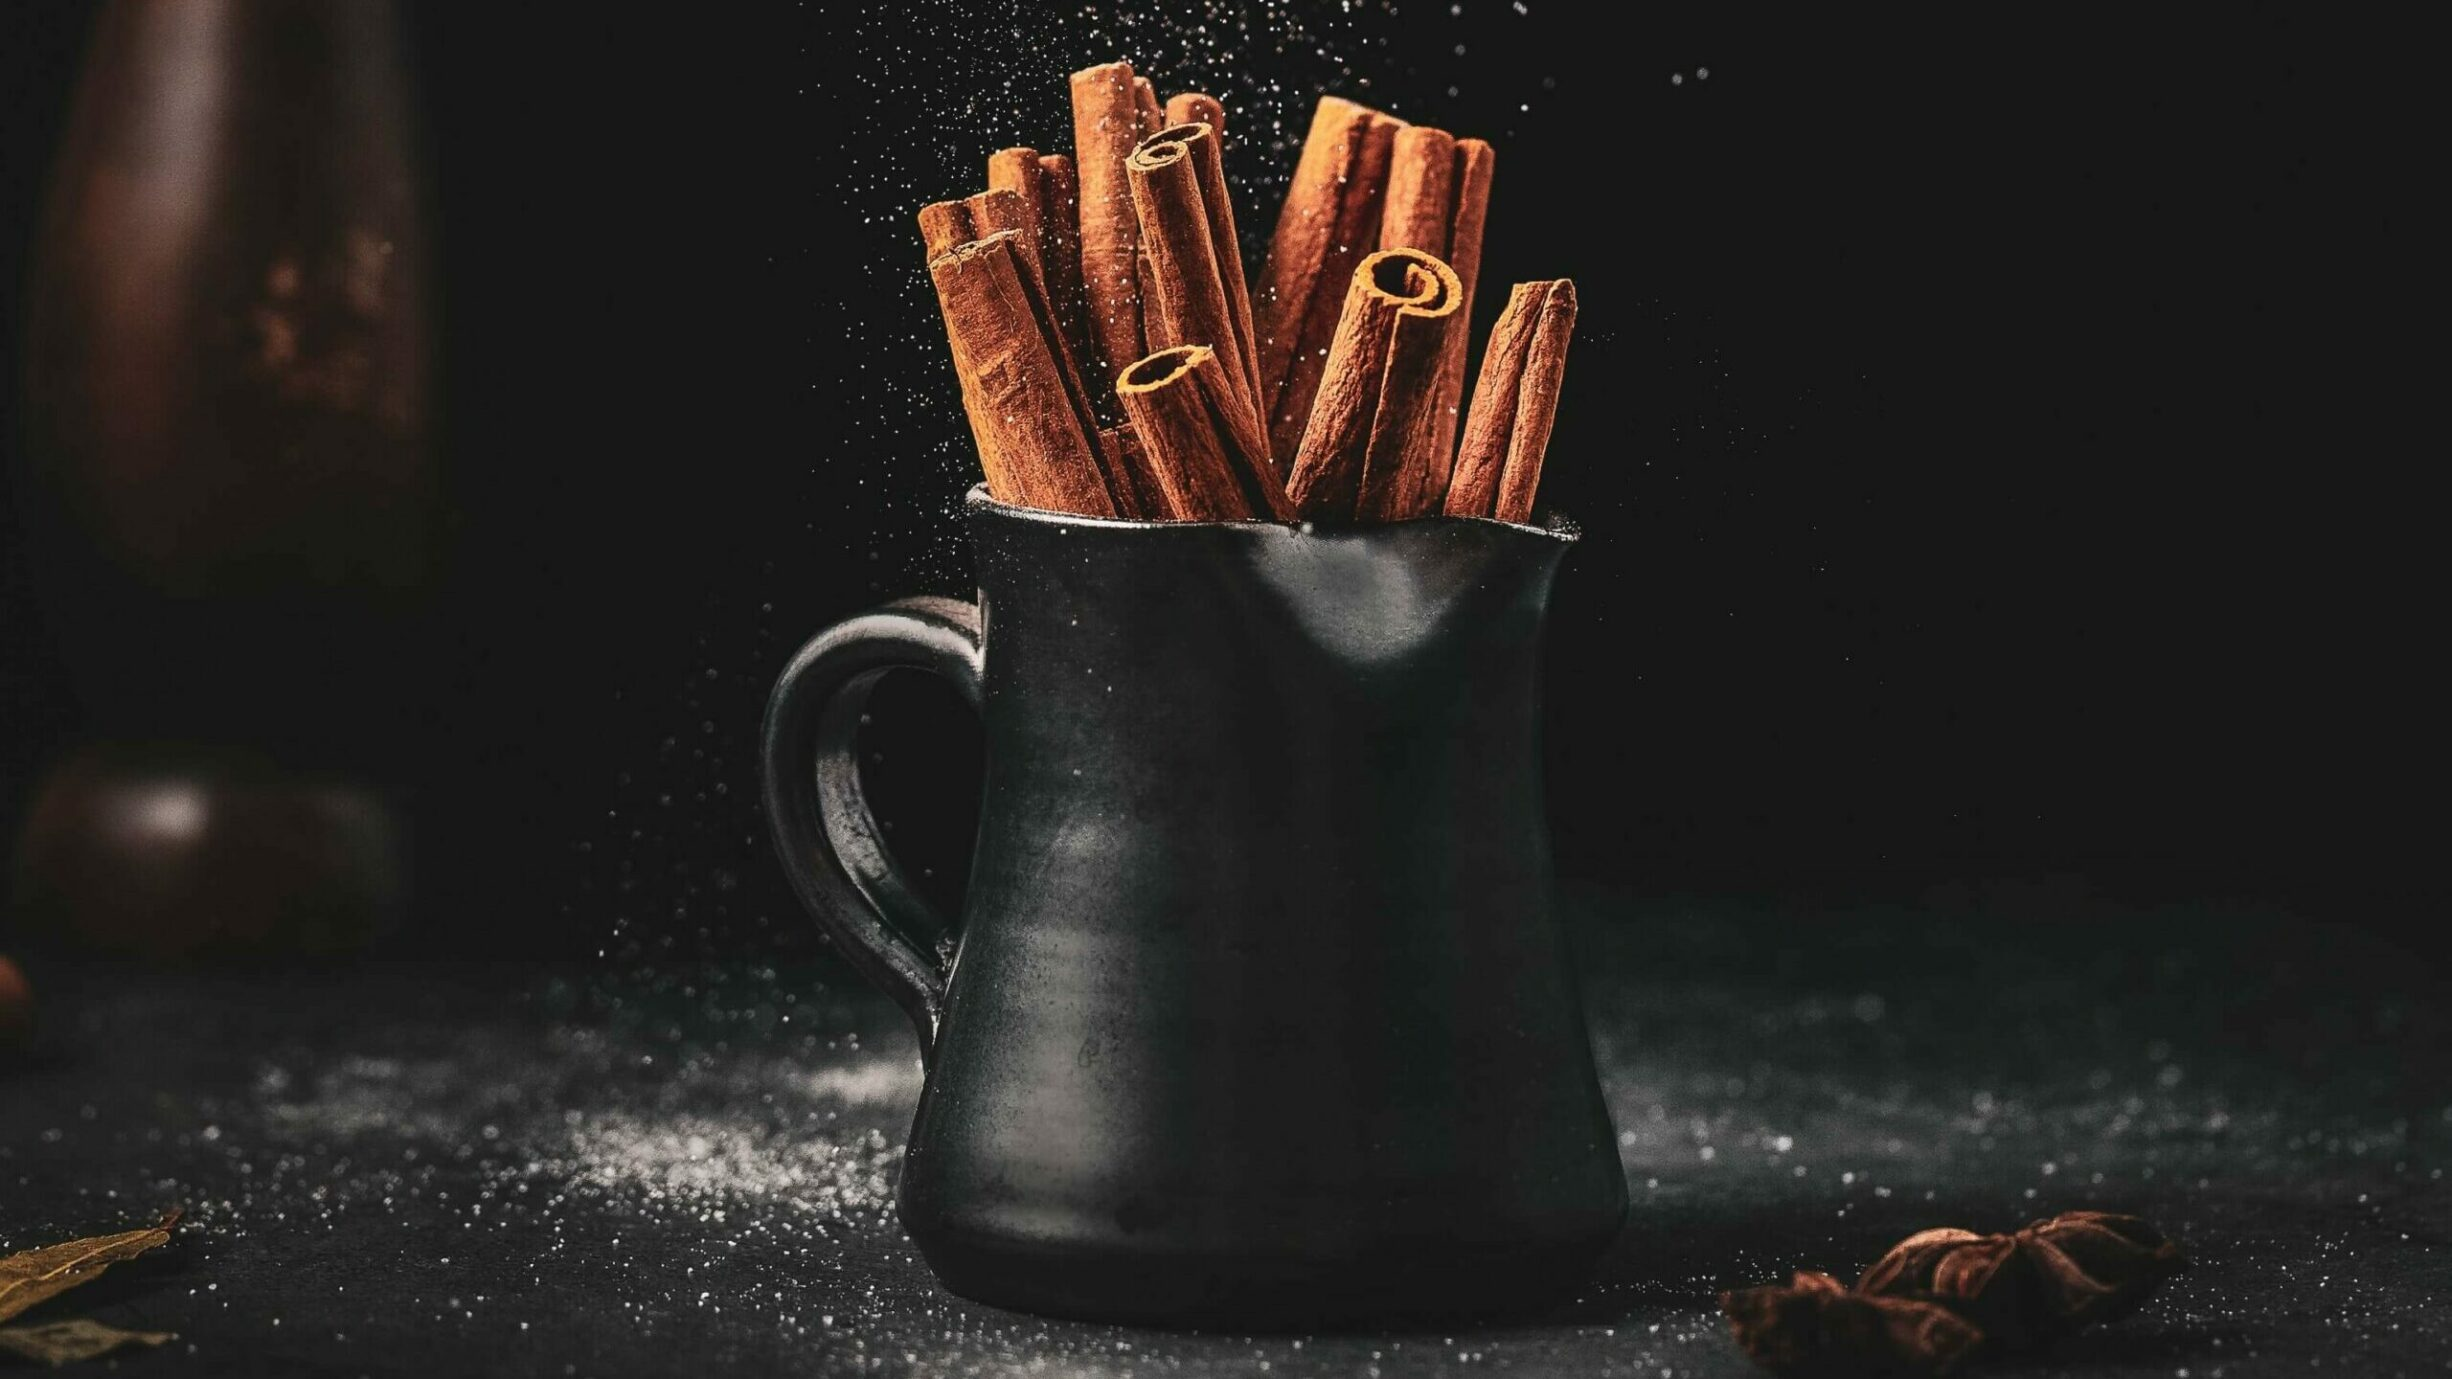 cinnamon bark in a black coffee mug